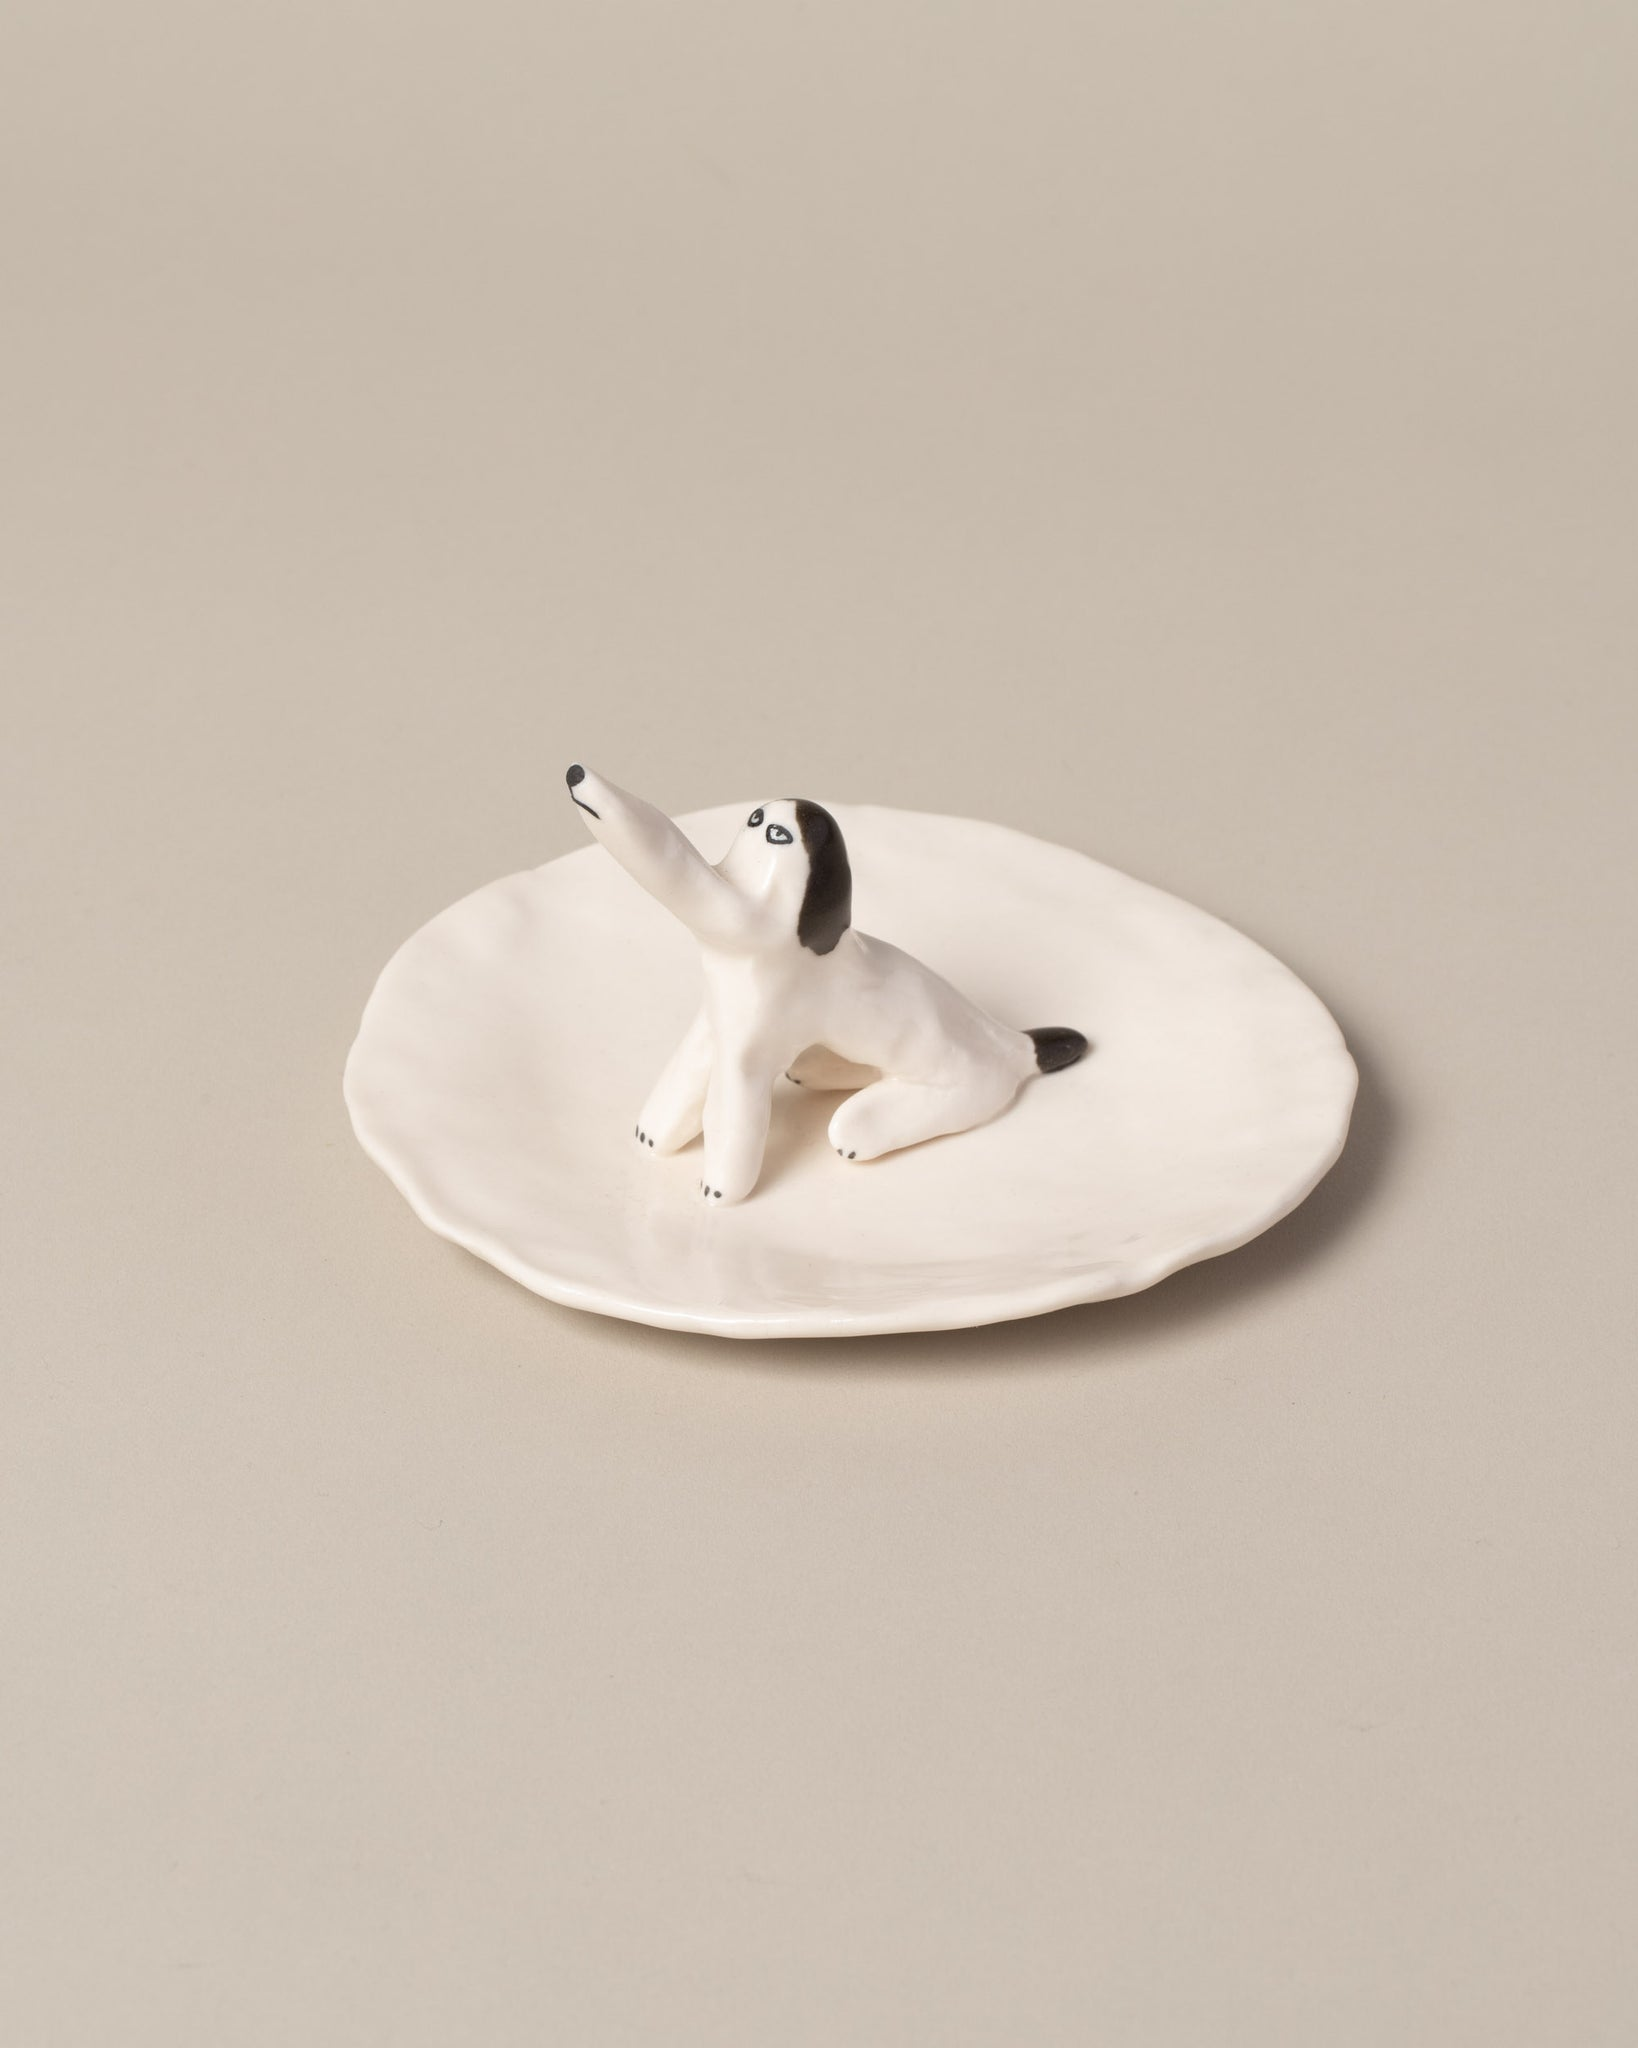 Eleonor Boström Dog Ring Dish on light color background